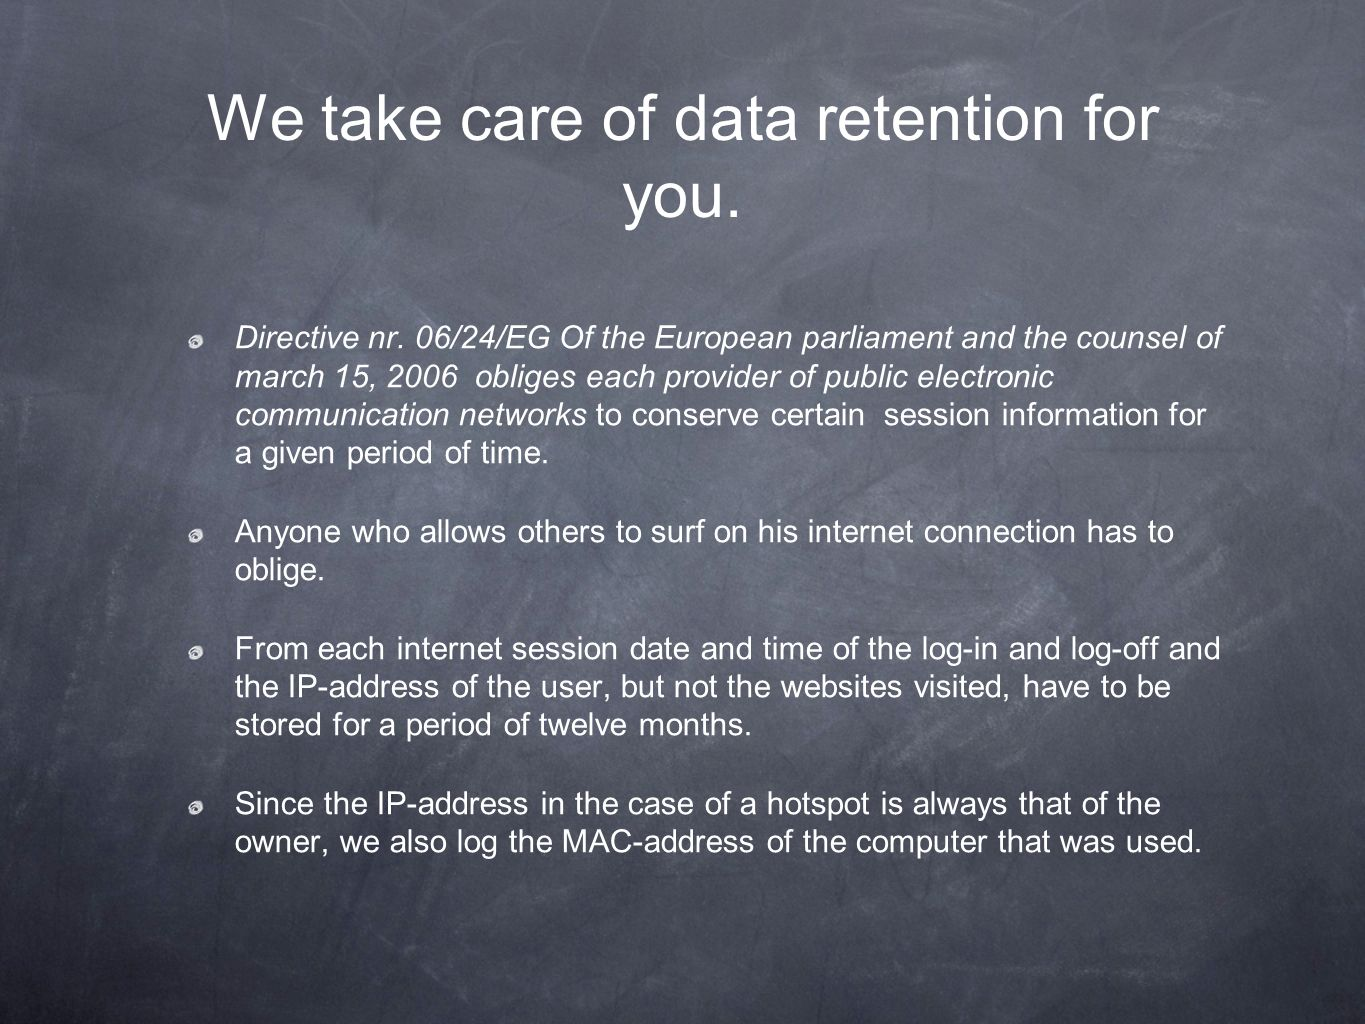 We take care of data retention for you.